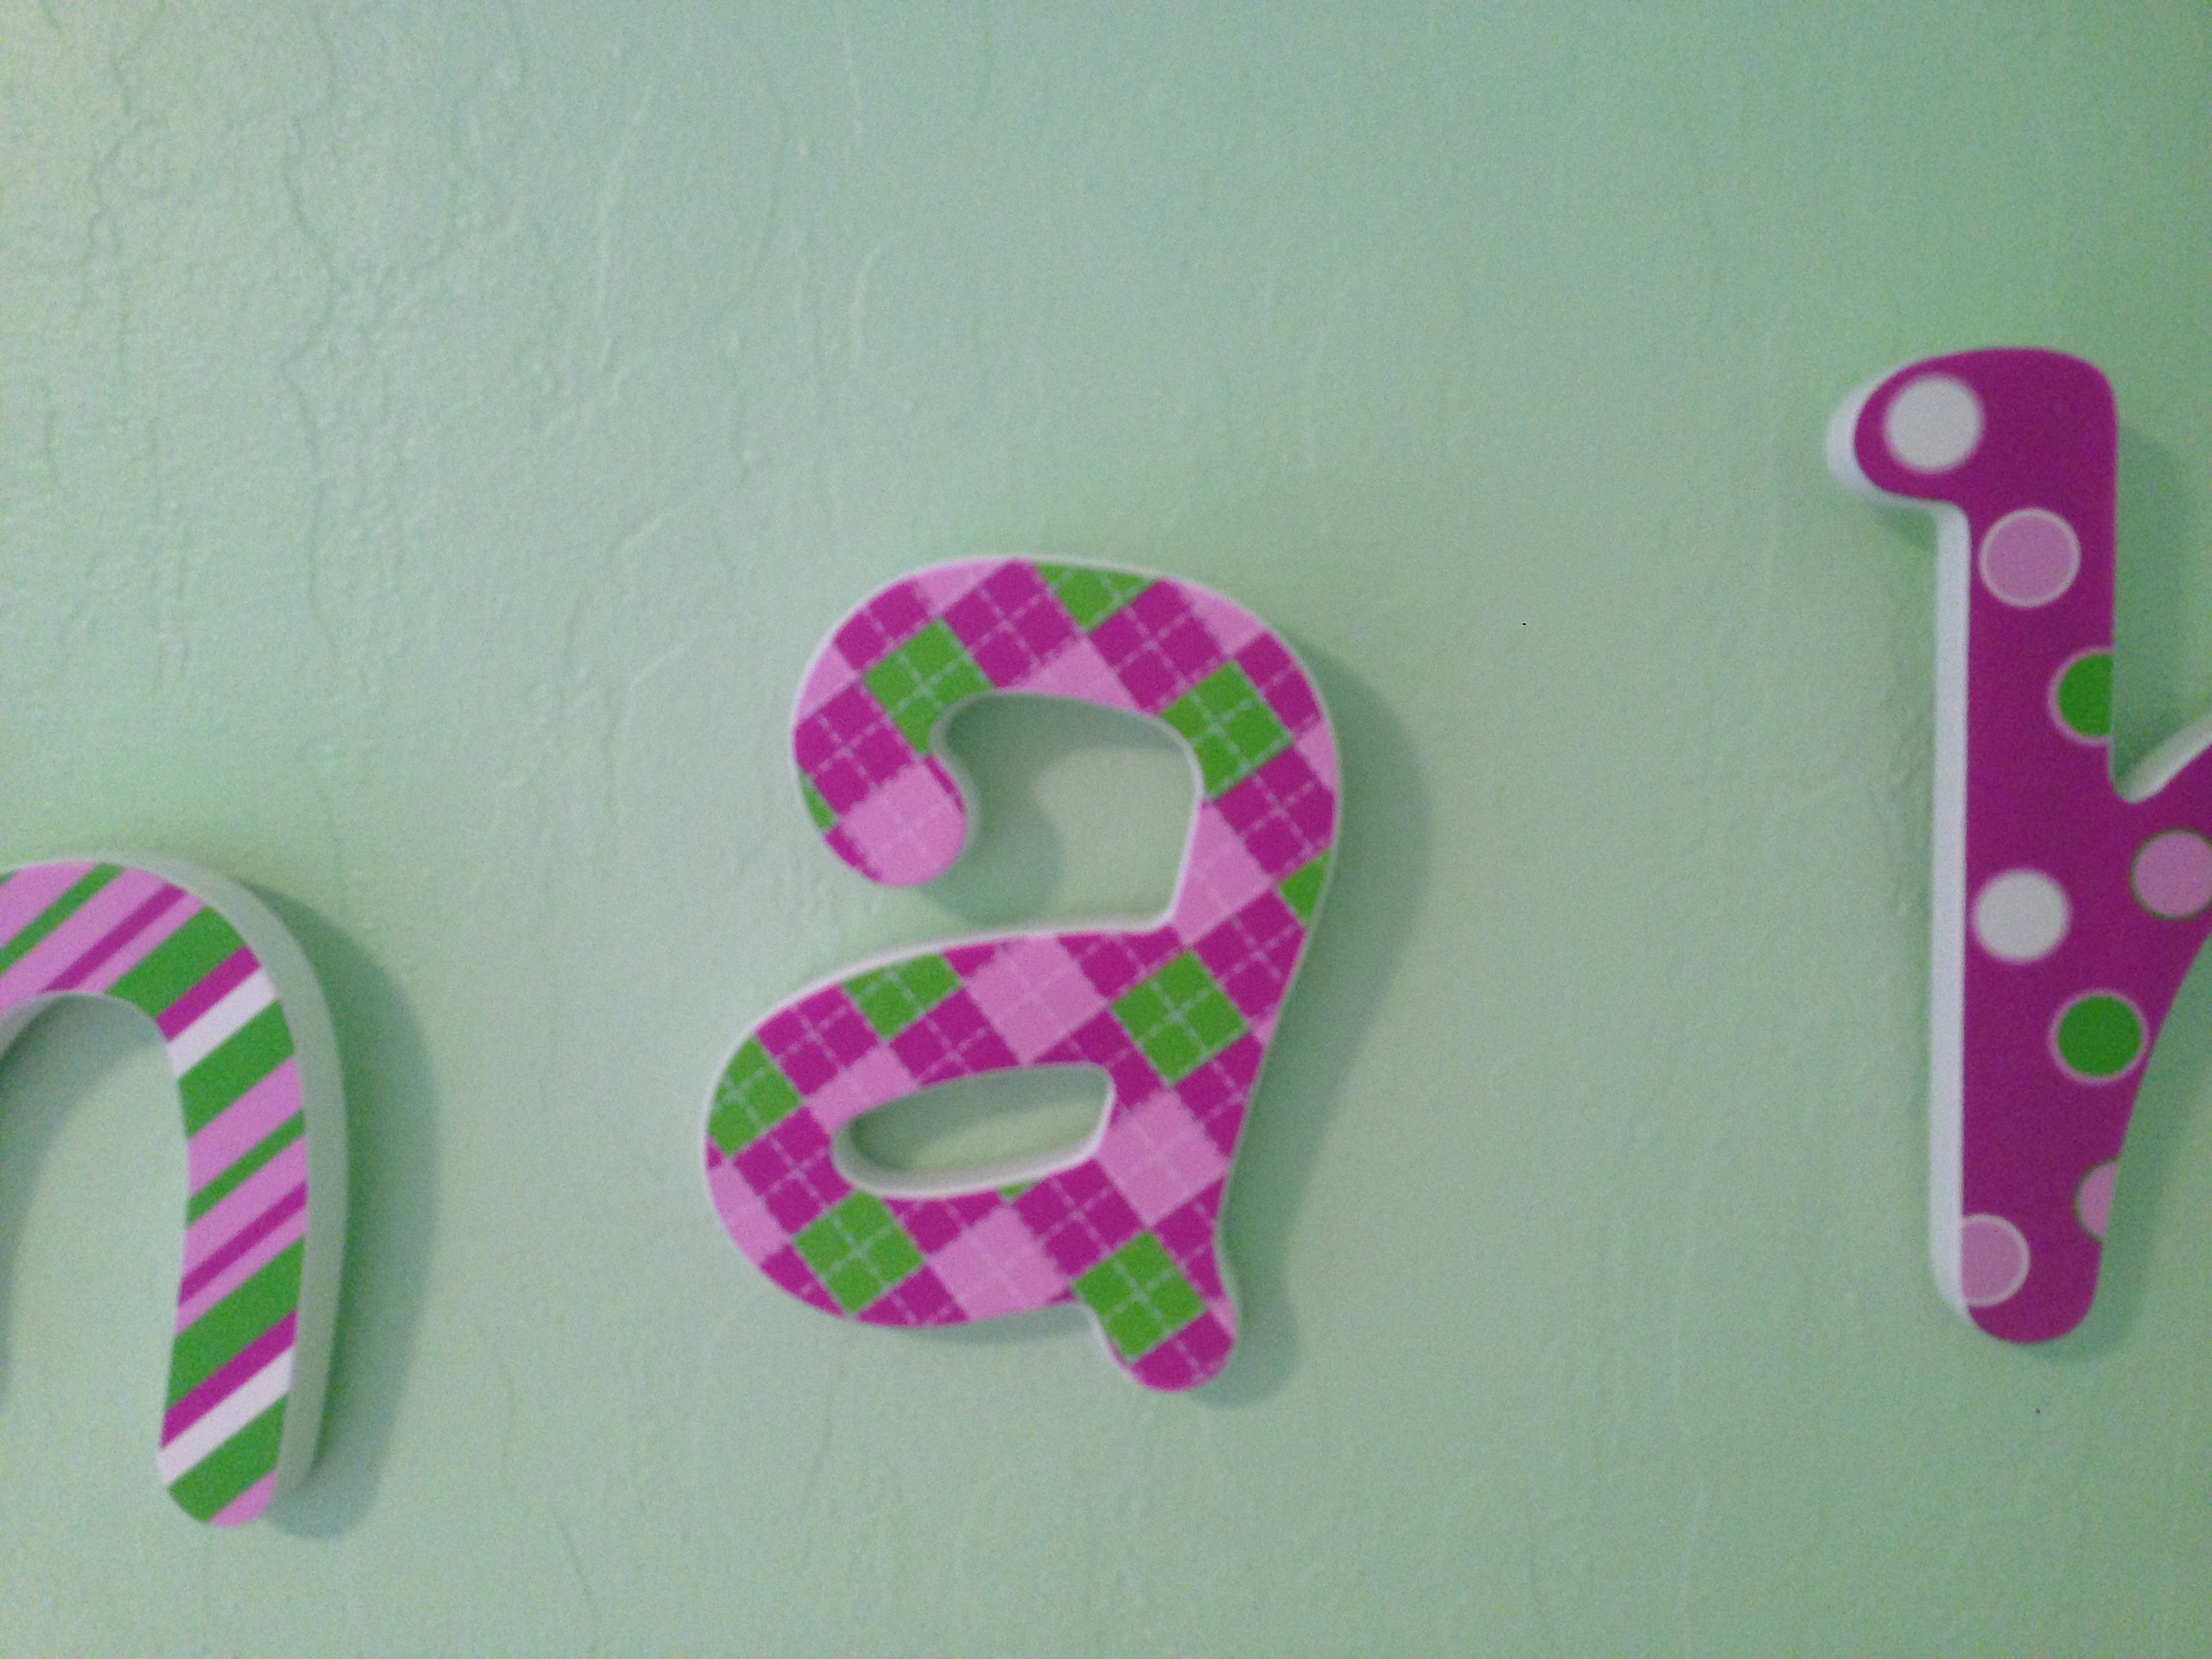 Today's Hint: DIY Budget-Friendly Nursery Wall Letters